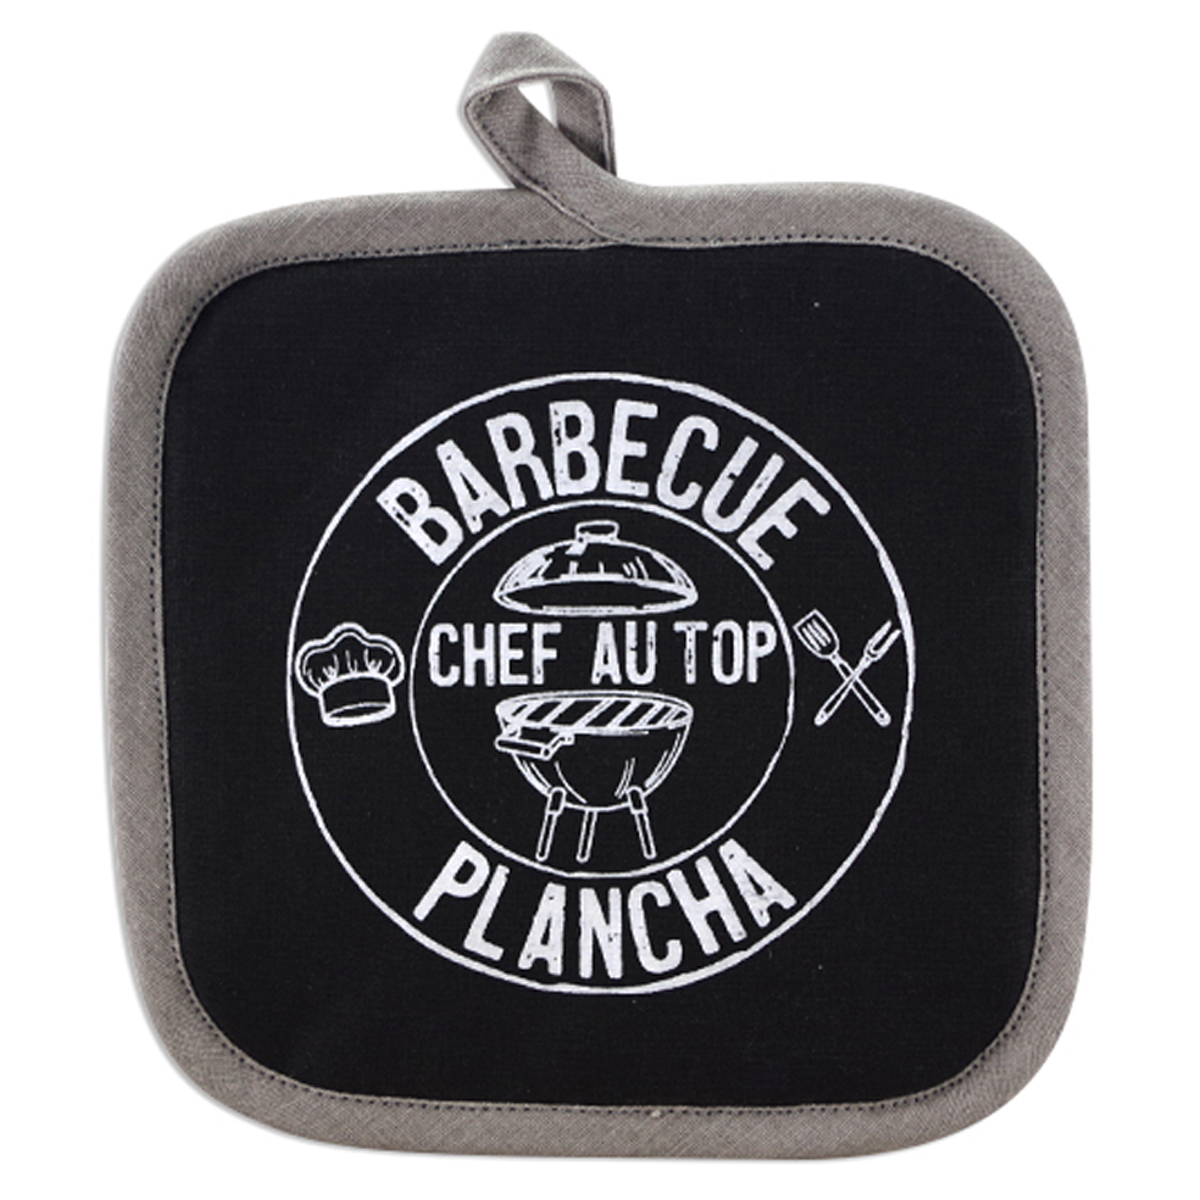 Manique coton \'Chef Barbecue\' noir gris (Barbecue Plancha, chef au top) - 20x20 cm - [A2428]